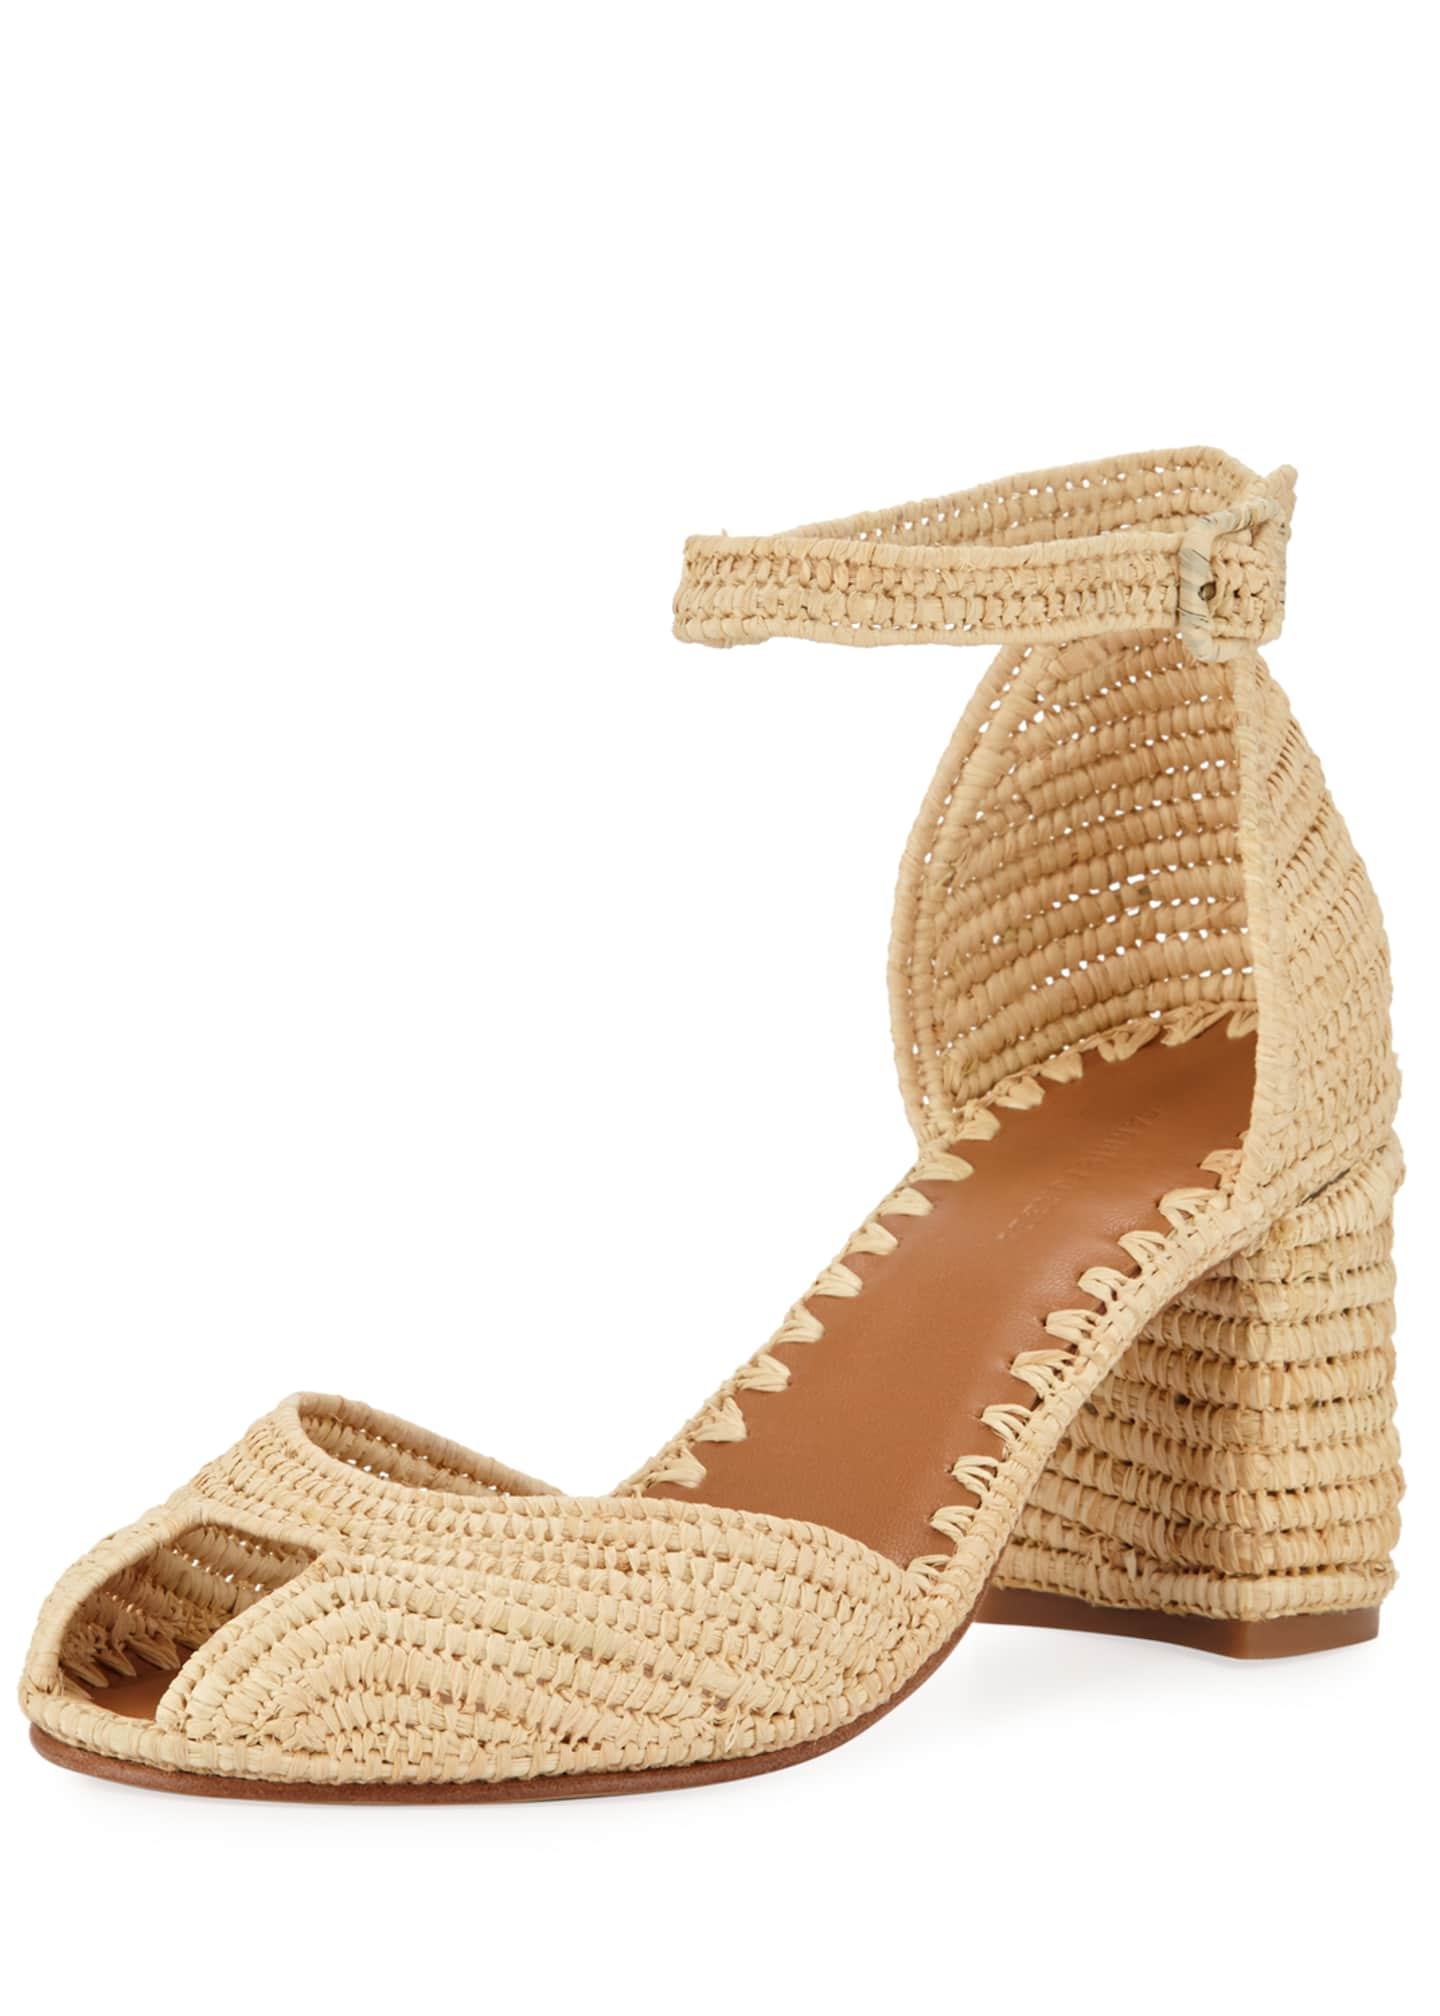 Carrie Forbes Laila Raffia Ankle Sandals